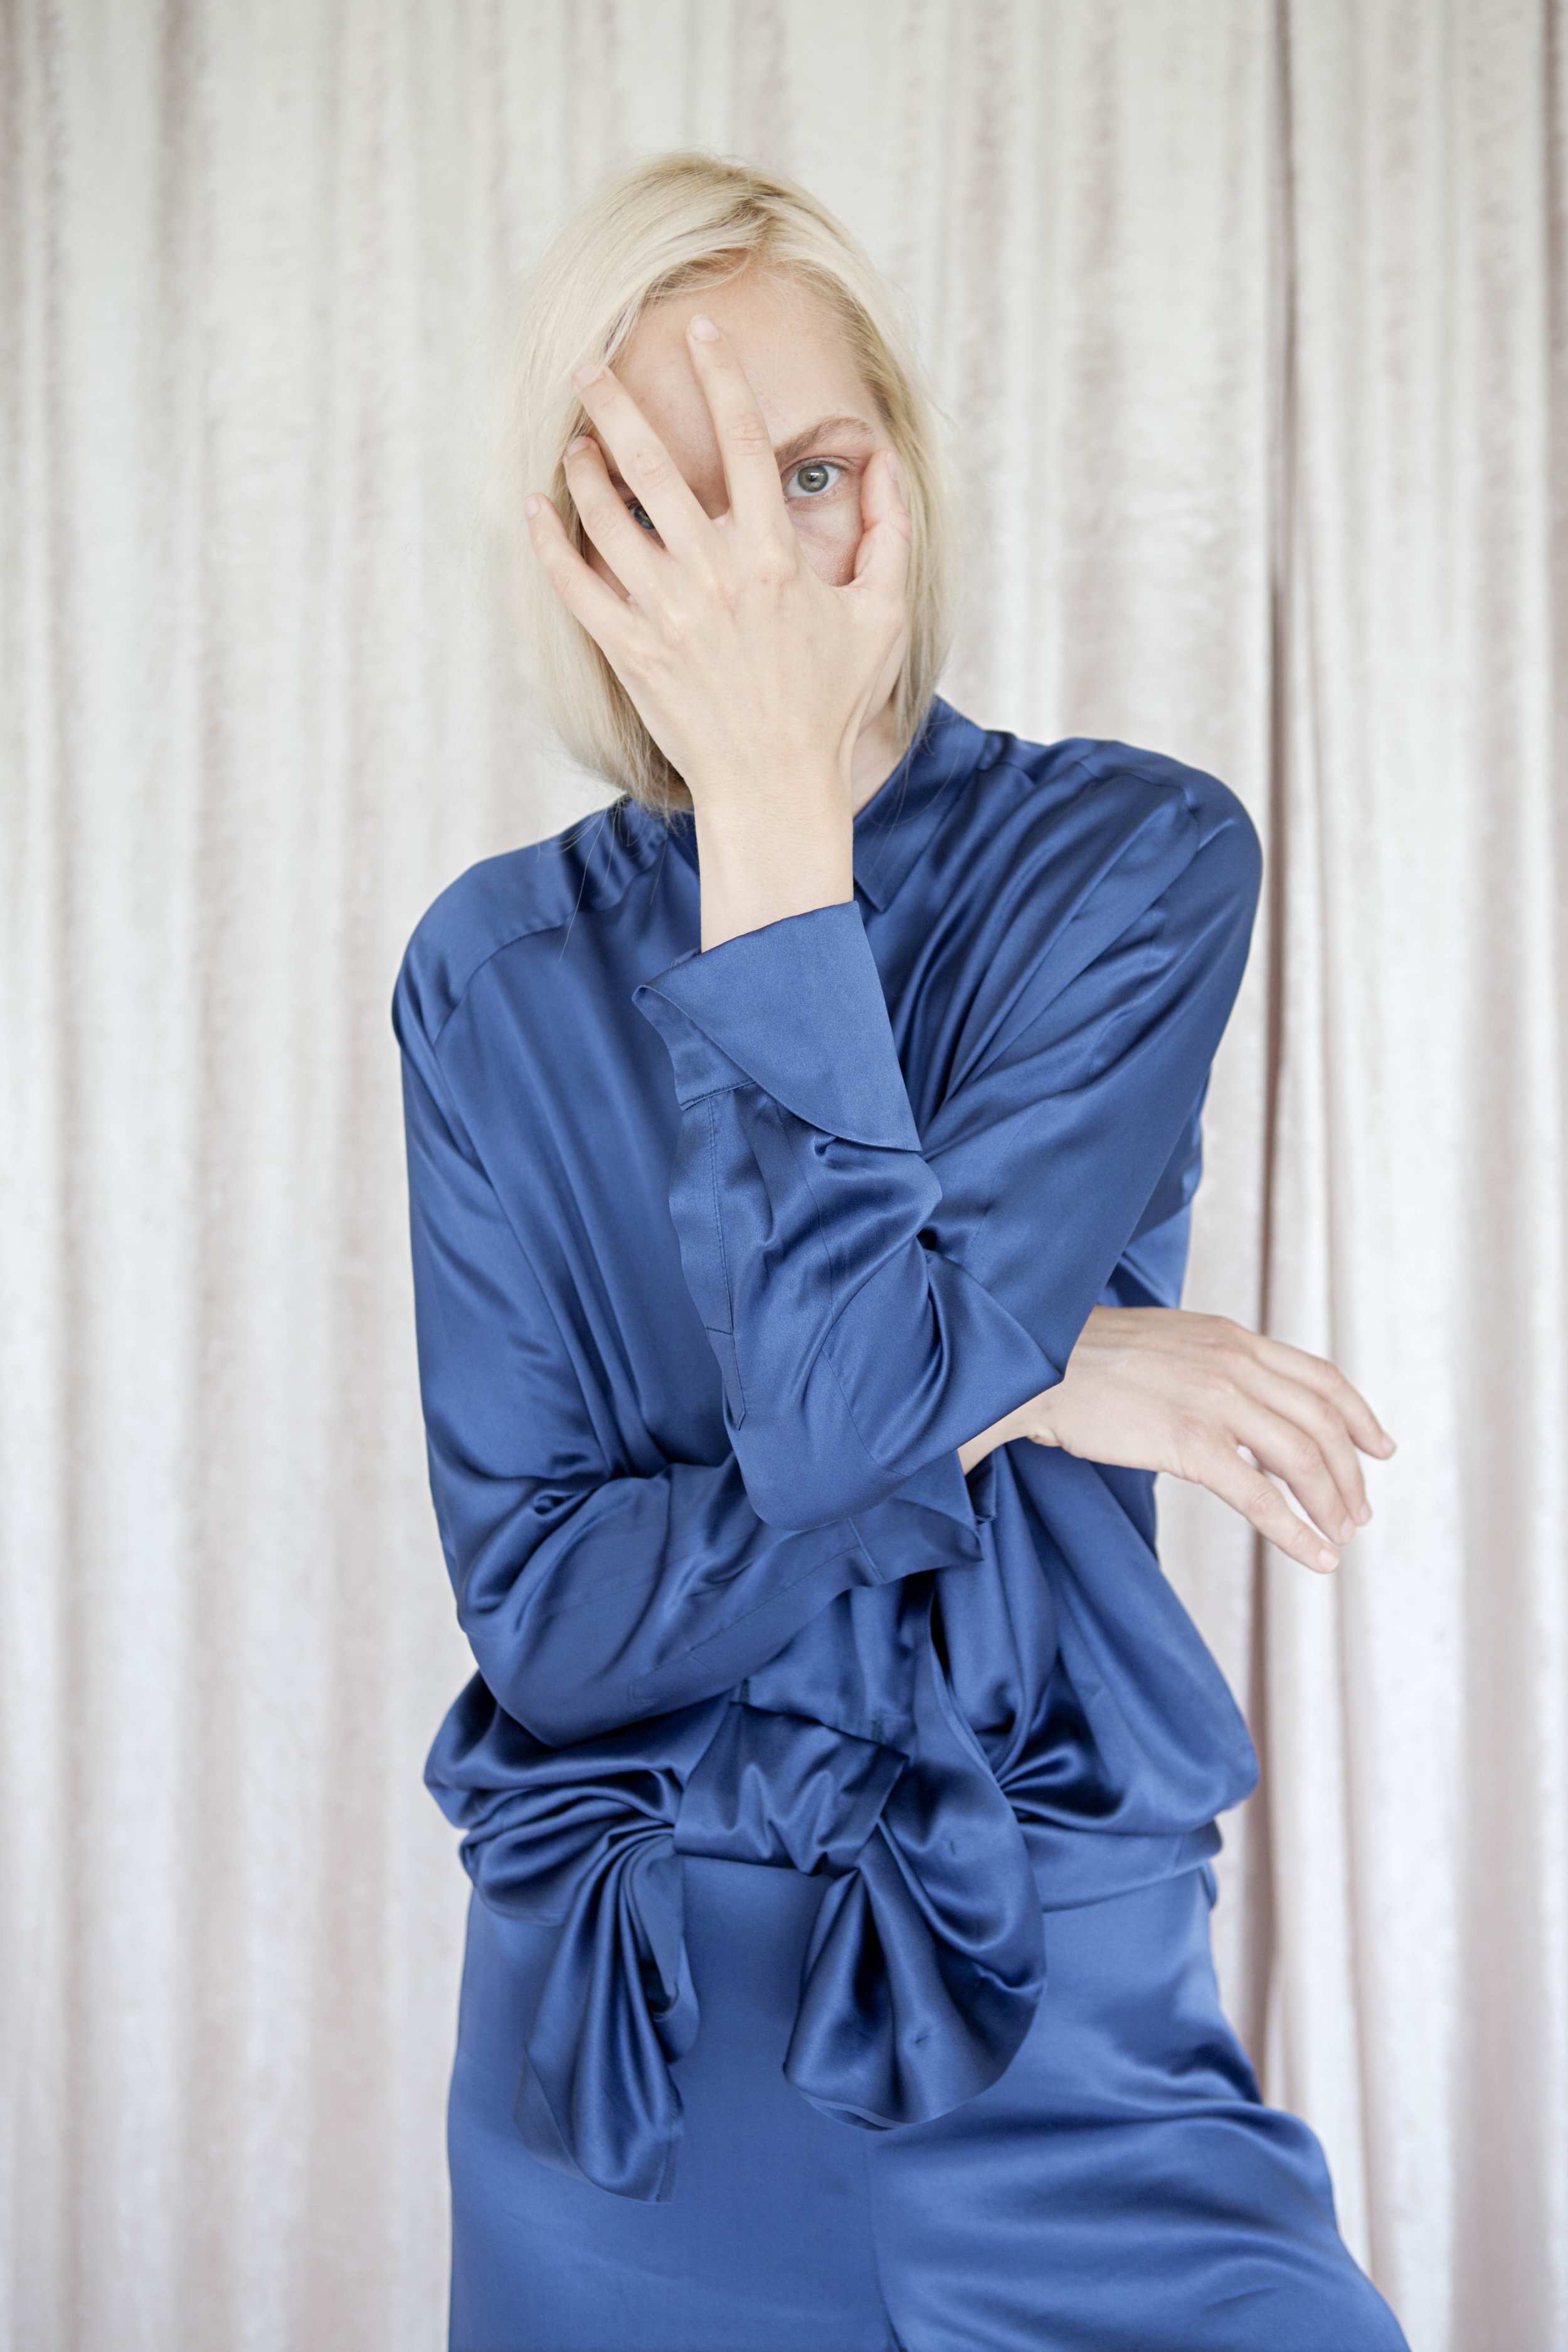 CABIN FEVER - Volume #01Cabin Fever is a mix of tailored clothes with small constructed details. It is built upon a mutual wish for more tailored one-of-a-kind pieces in high quality textiles. The collection is small and highly curated.Photography by Therese Fische / Hair and Make-Up by Parisa Fard / Model Yvonne Eriksen